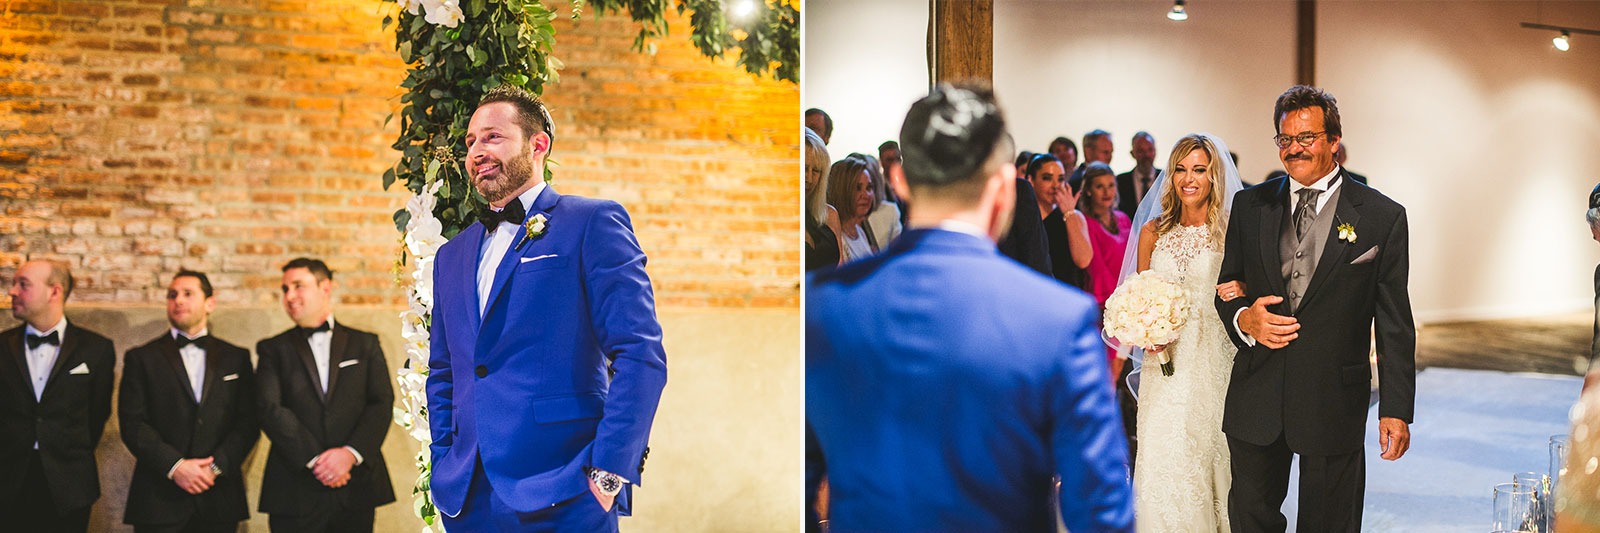 39 wedding at gallery 1028 - Chicago Wedding Photography at Gallery 1028 // Courtnie + David